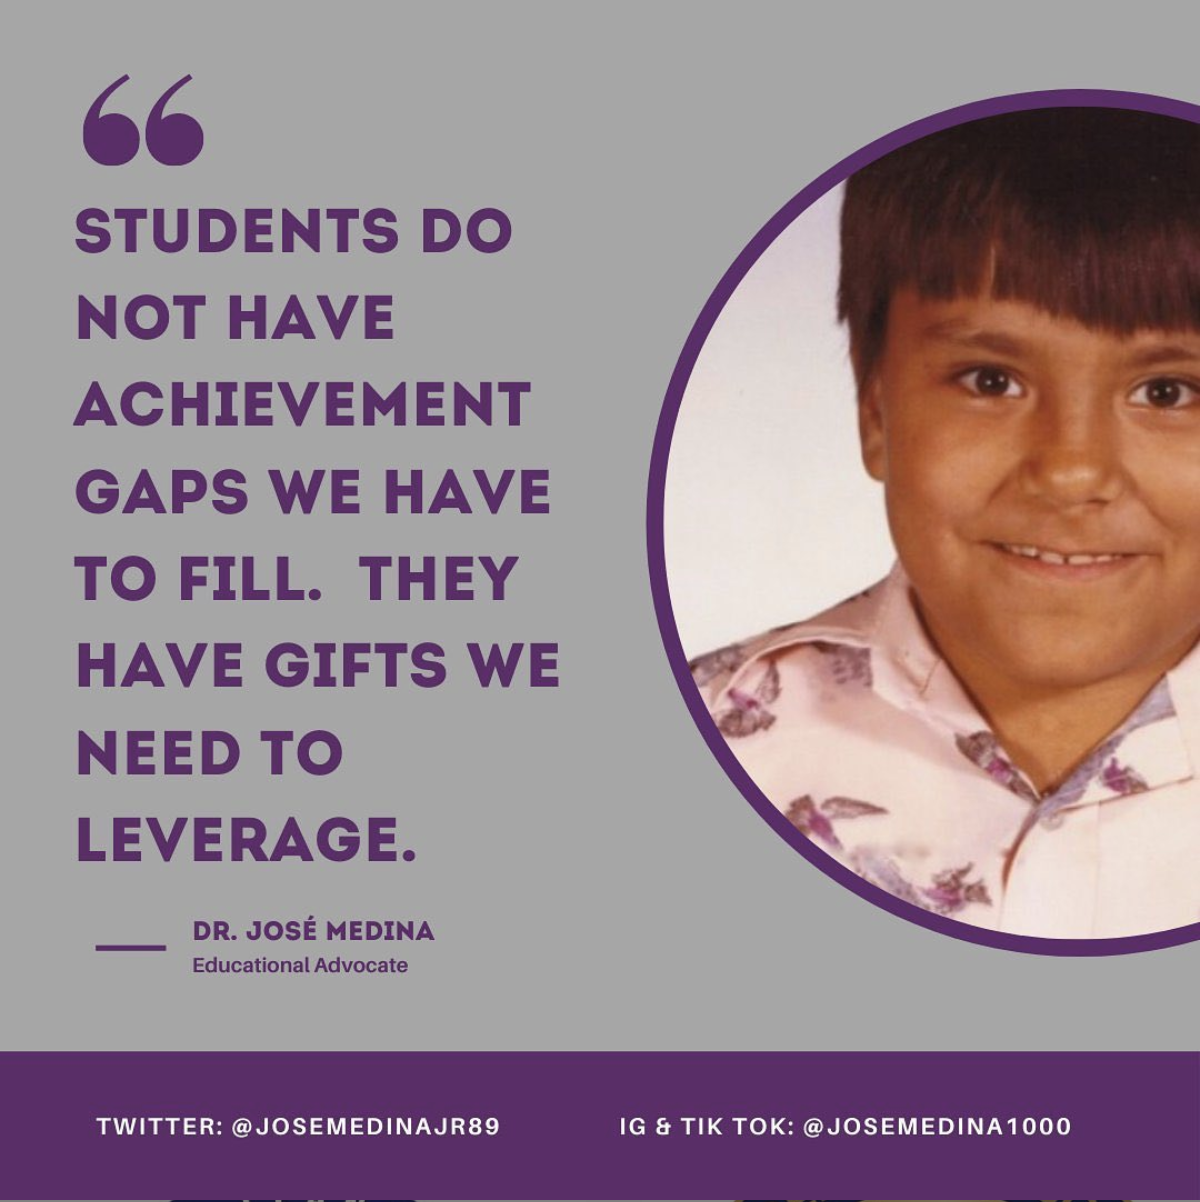 Quote graphic that says: Students do not have achievement gaps we have to fill. They have gifts we need to leverage. Dr. Jose Medina.